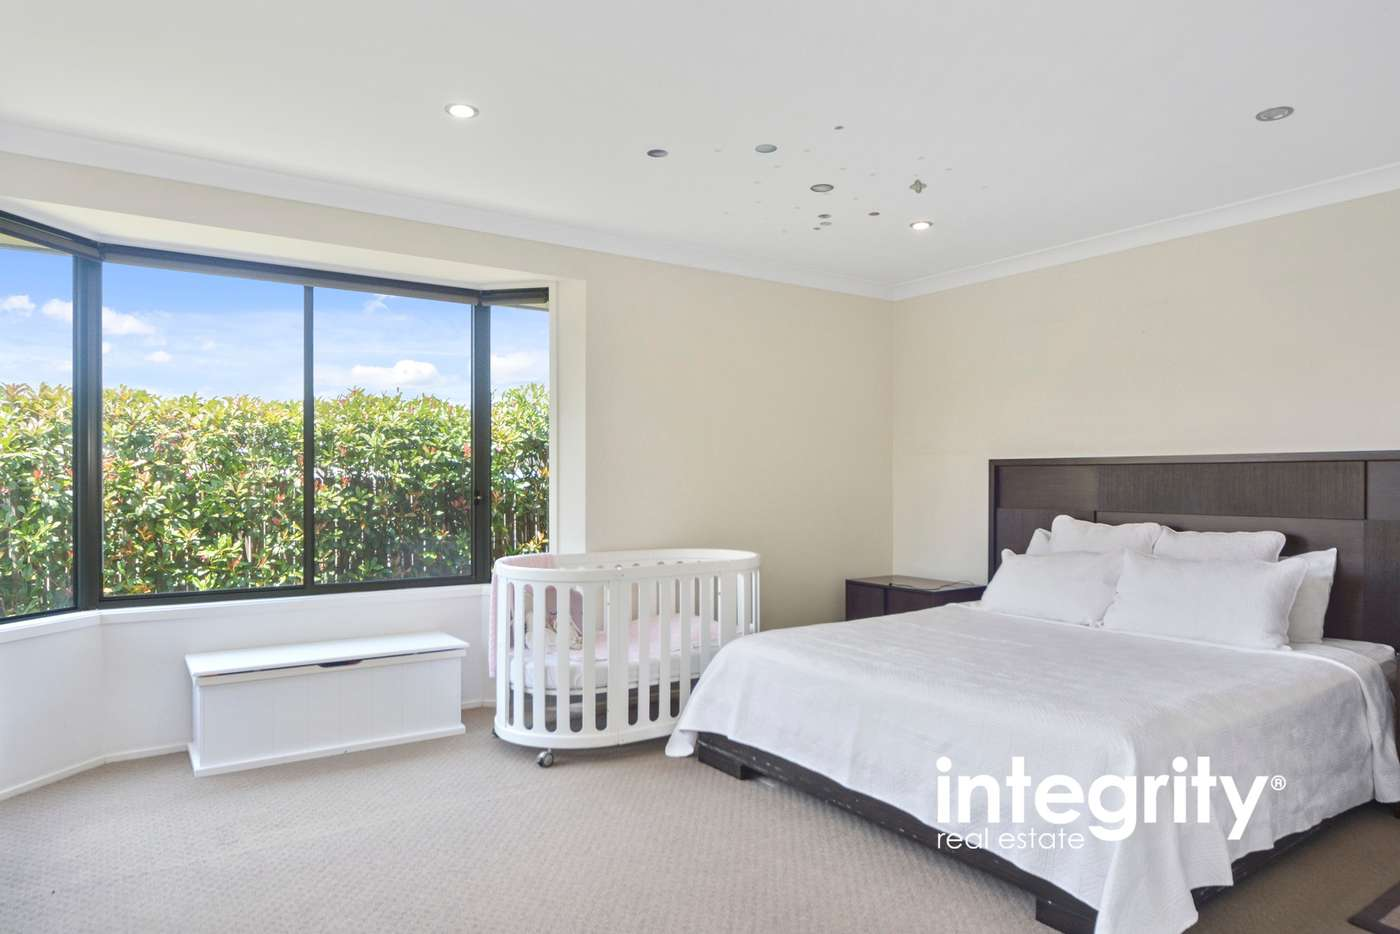 Sixth view of Homely house listing, 2 Golden Ash Close, Worrigee NSW 2540